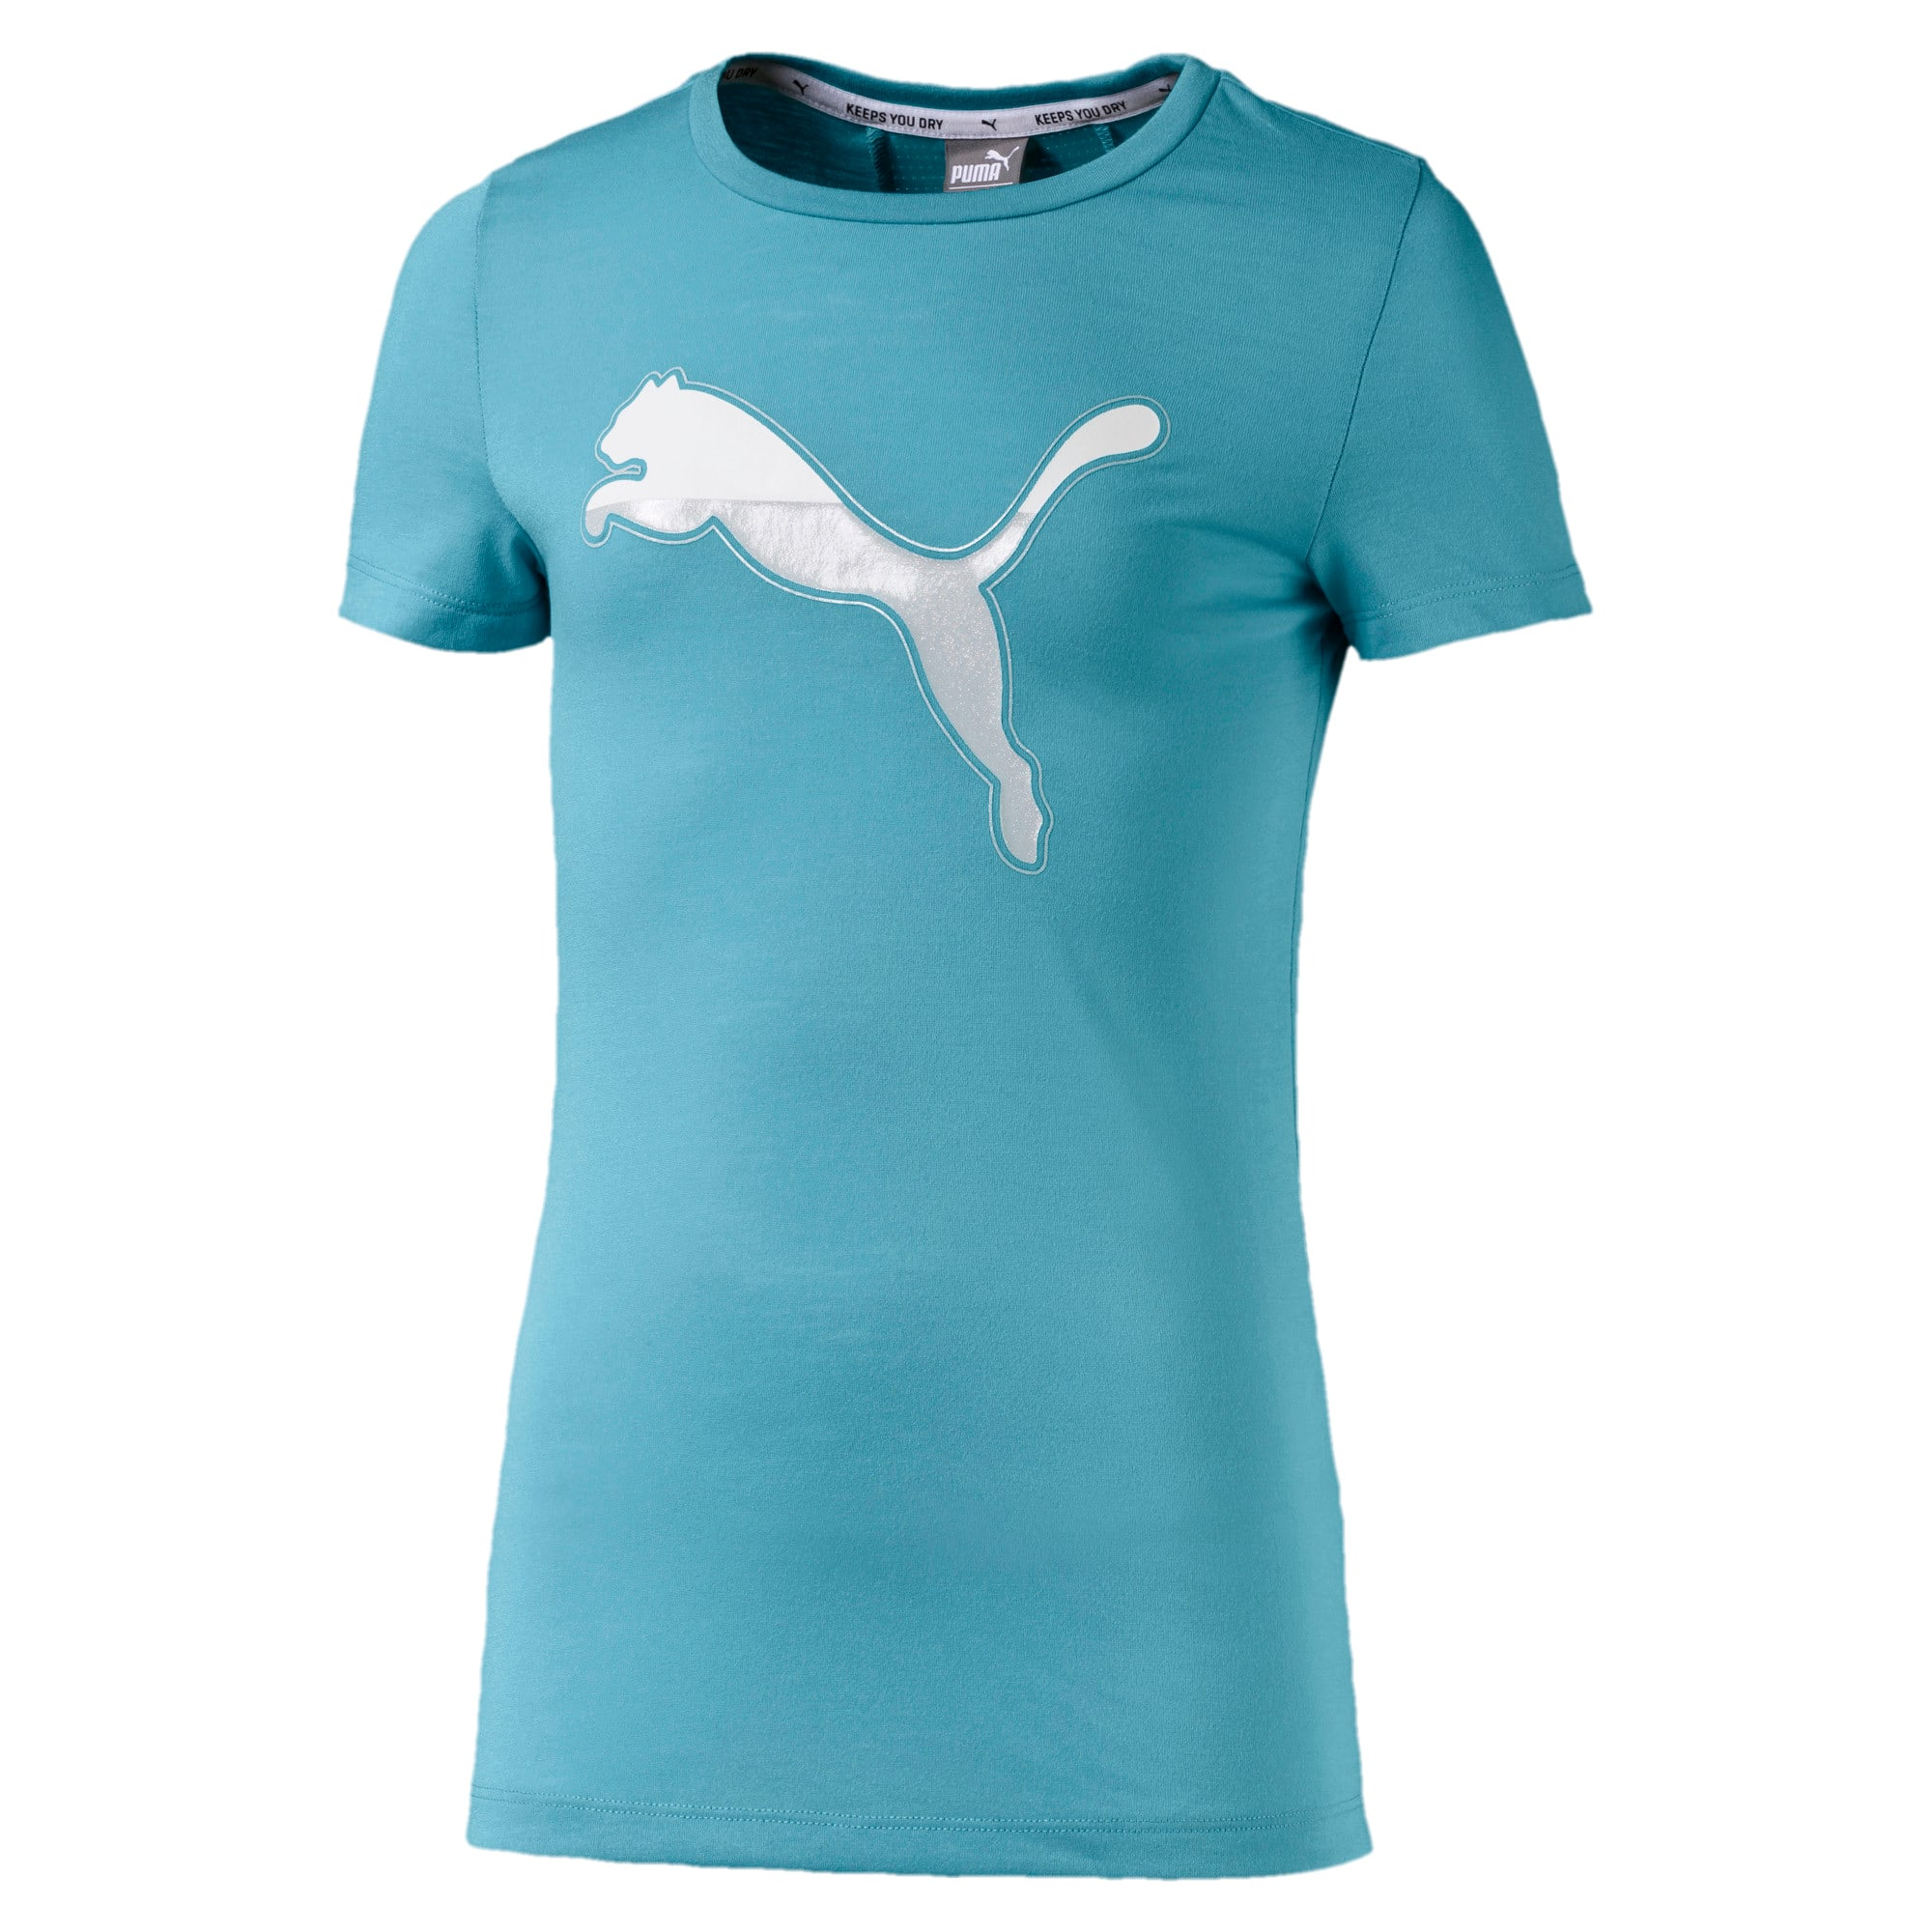 Thumbnail 1 of Active Sports dryCELL Girls' Tee, Milky Blue, medium-IND